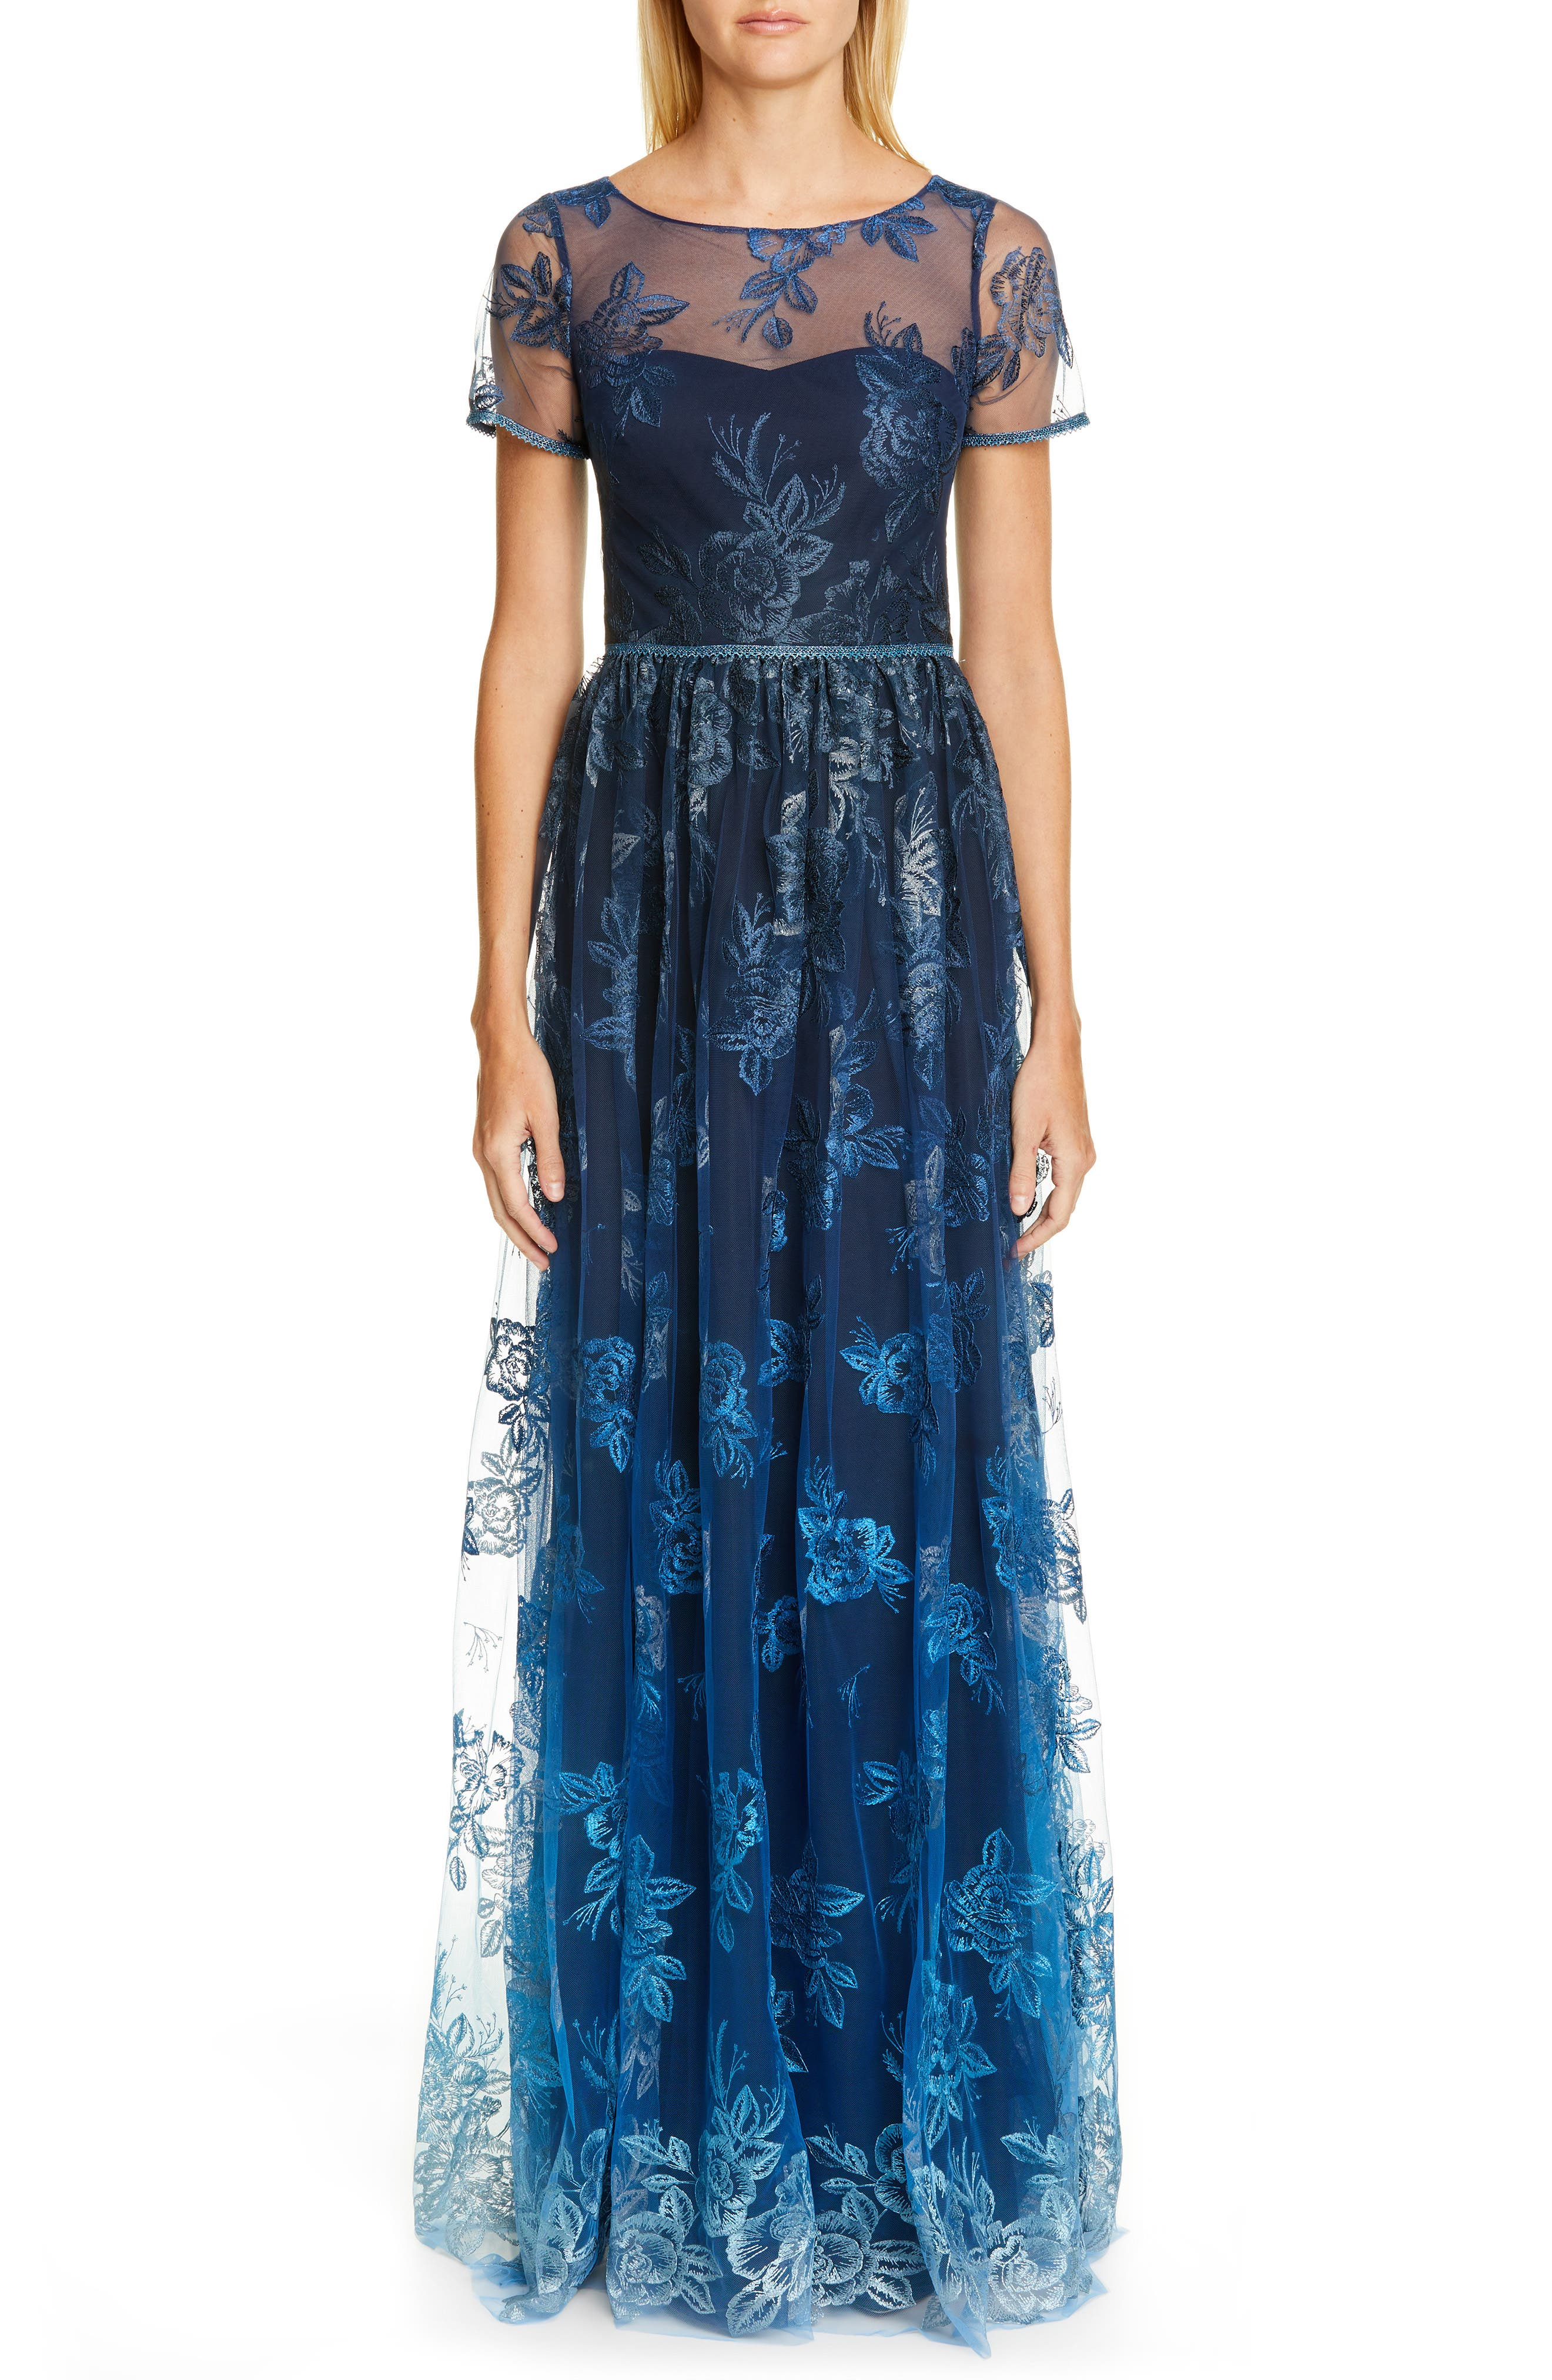 MARCHESA NOTTE, Ombré Embroidered Gown, Main thumbnail 1, color, NAVY